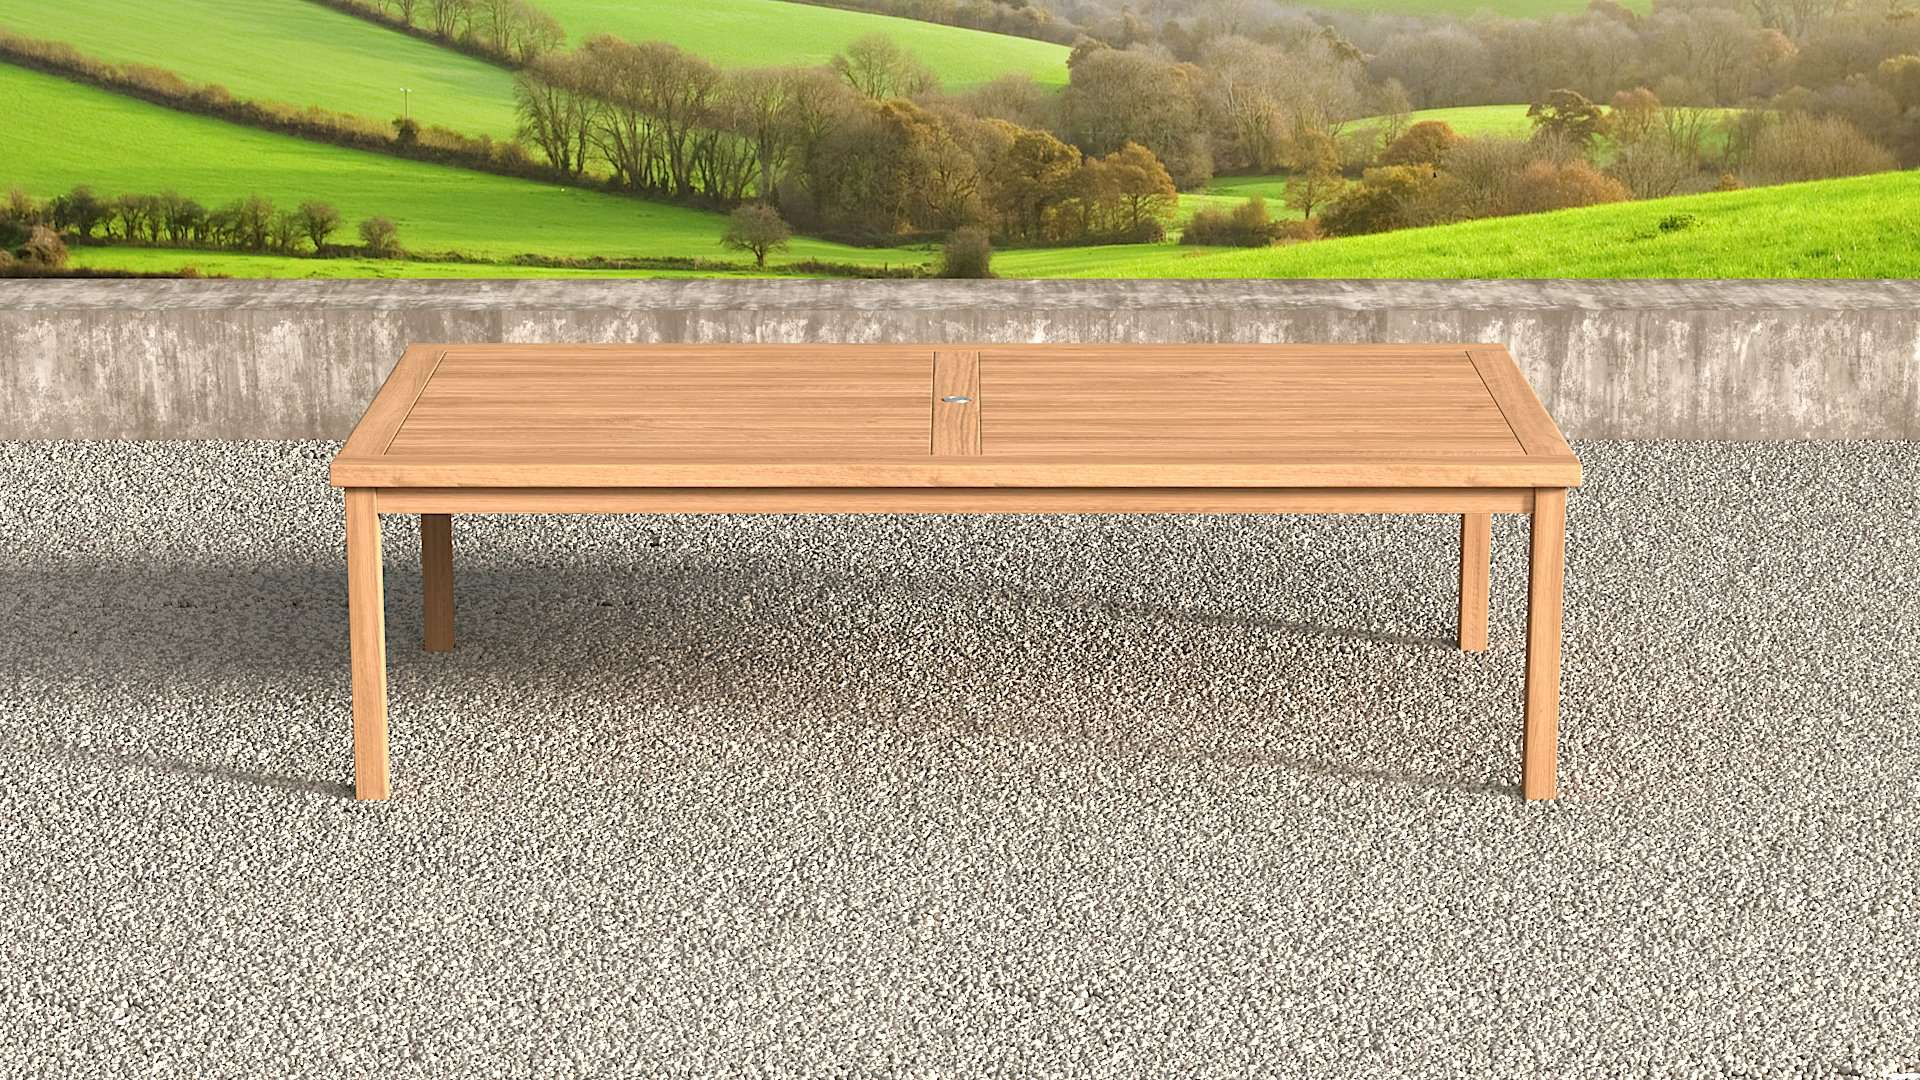 Garden Teak Table 280cm (12-14 Seater)  - Chic Teak® | Luxury Teak Furniture